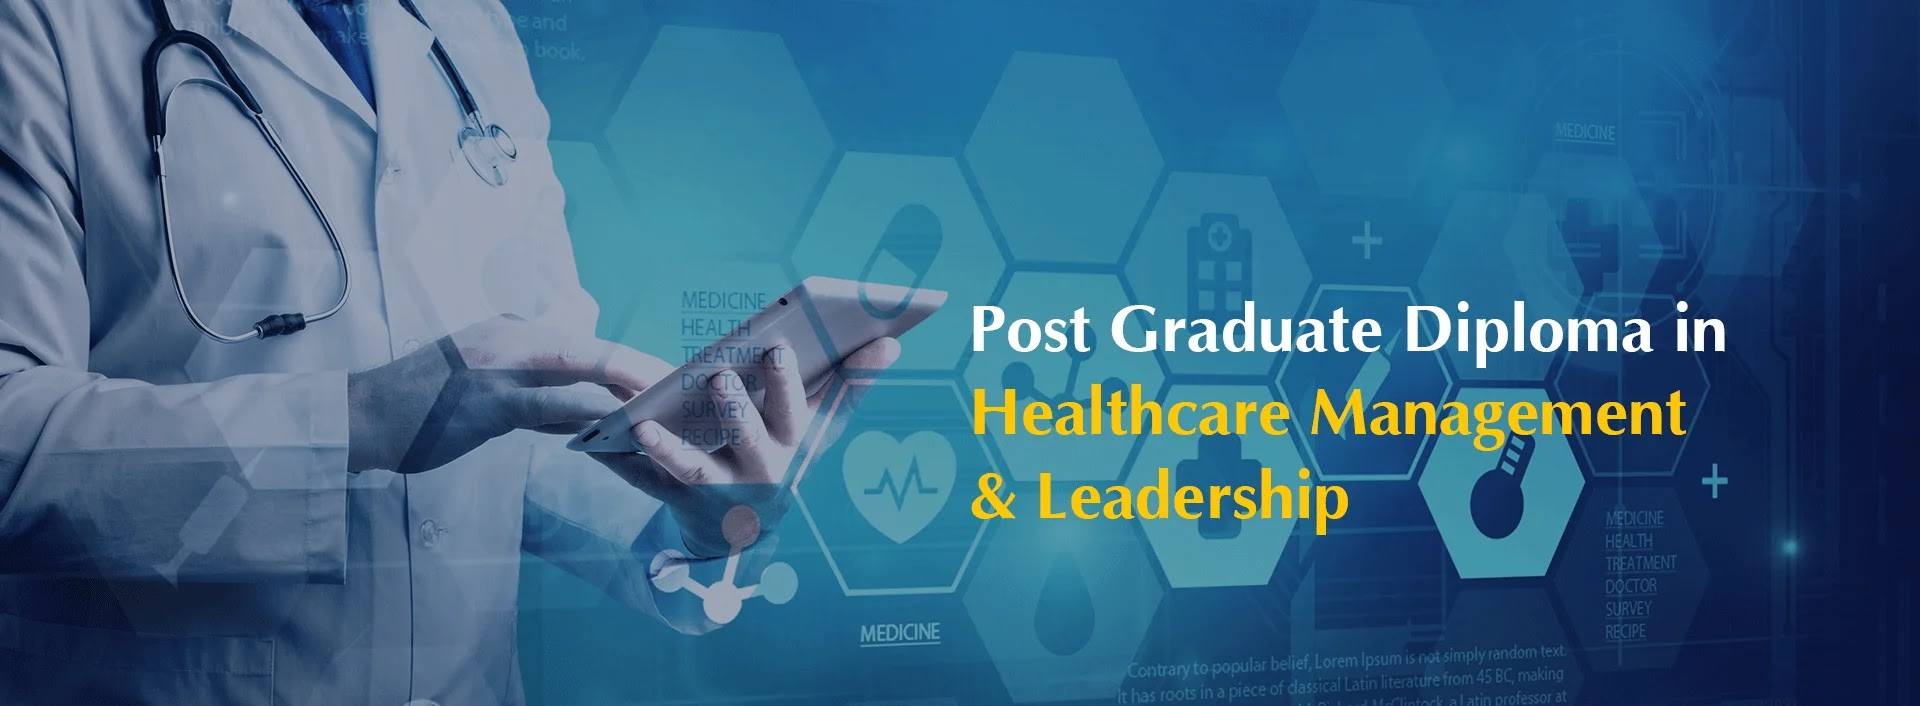 Best Post Graduate Diploma in Healthcare Management